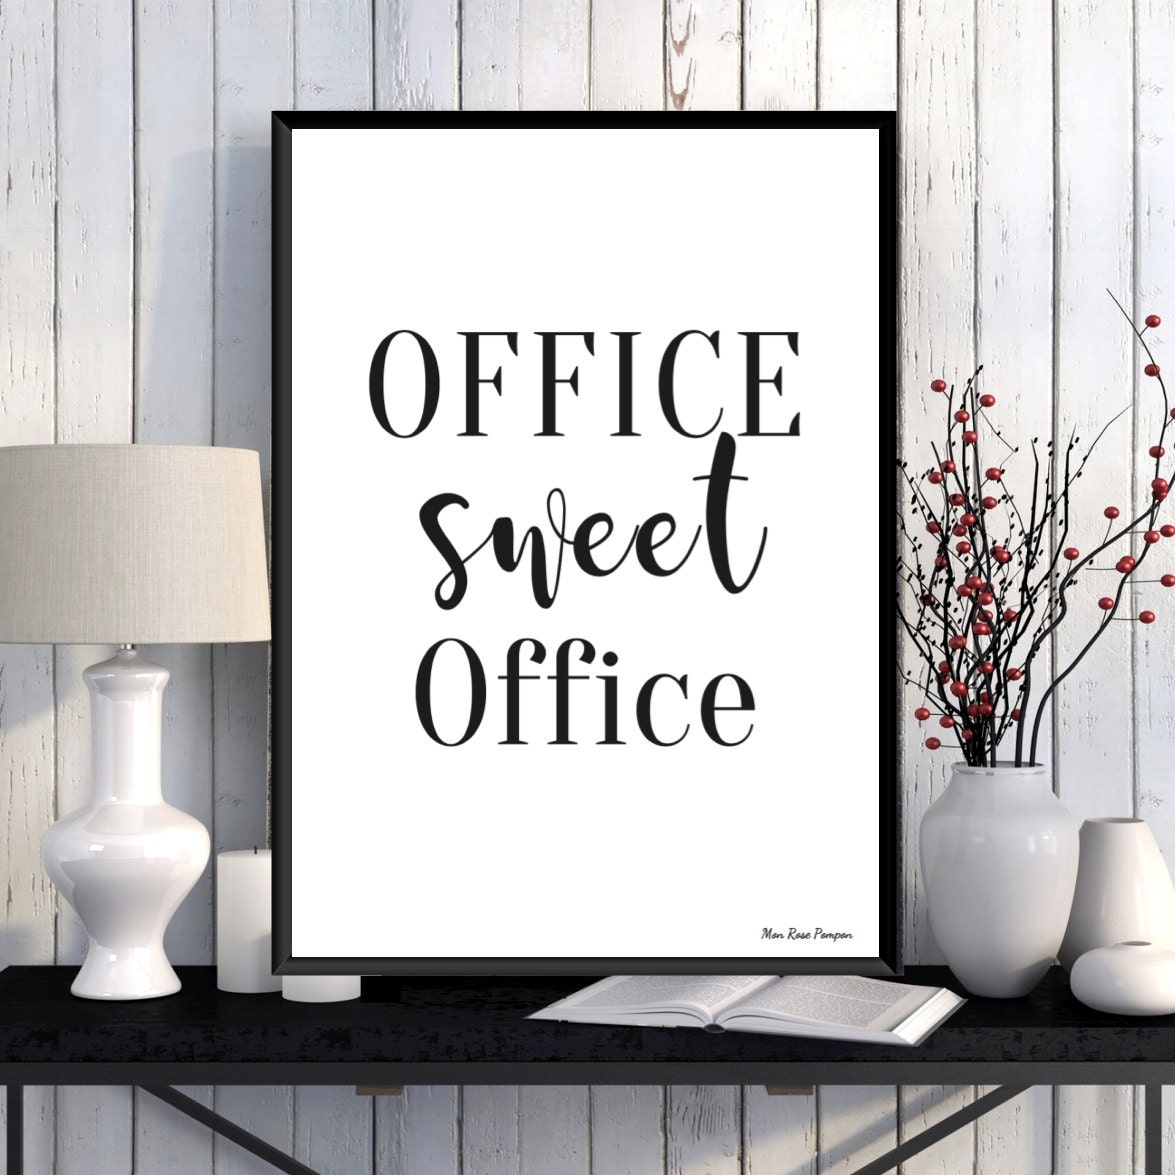 zoom Office wall decor Office quote Office